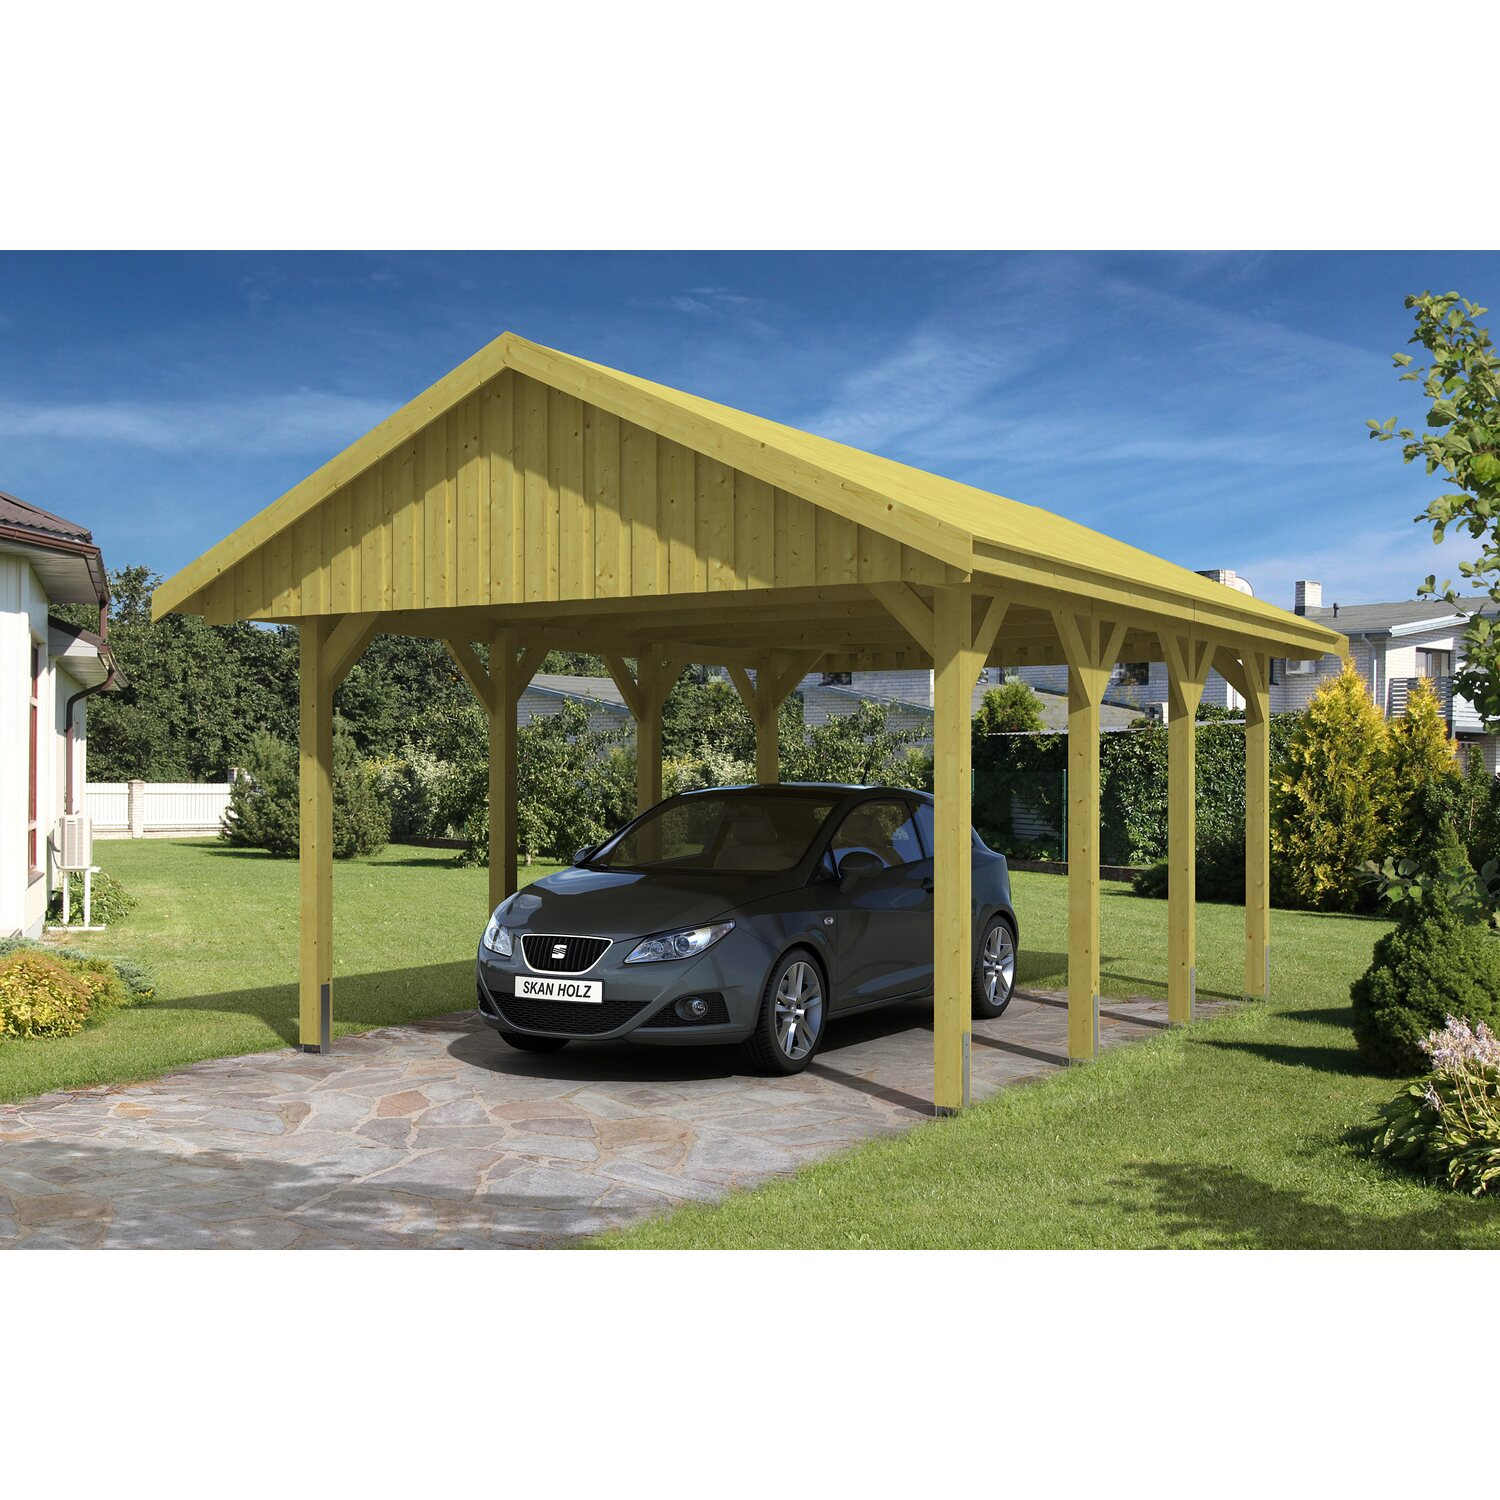 skan holz satteldach carport sauerland 430 cm x 600 cm dachschalung kaufen bei obi. Black Bedroom Furniture Sets. Home Design Ideas